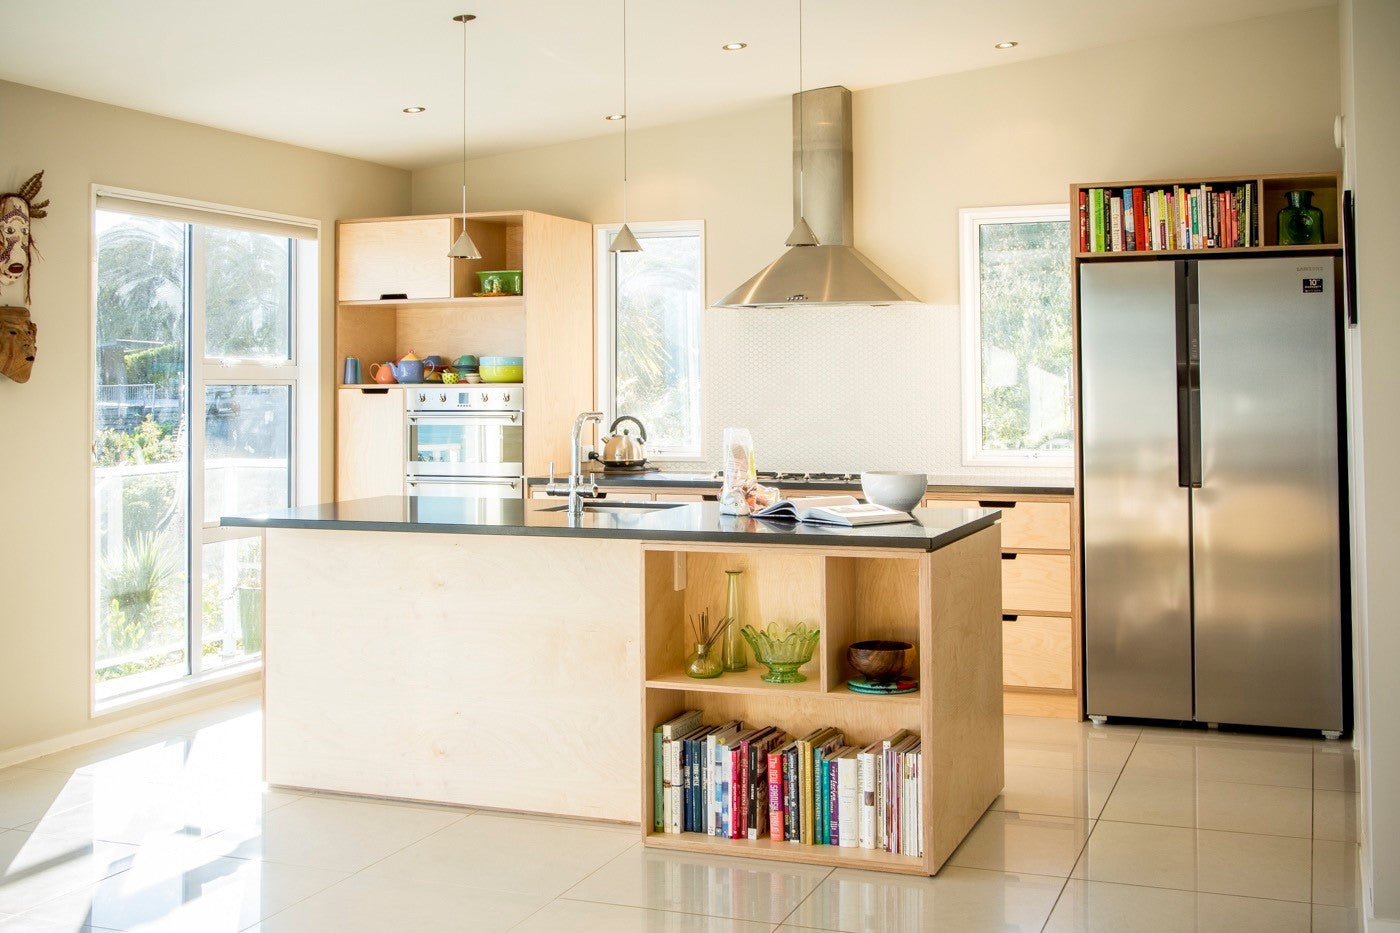 Make Furniture - Custom Plywood Kitchens, Furniture and Commercial ...